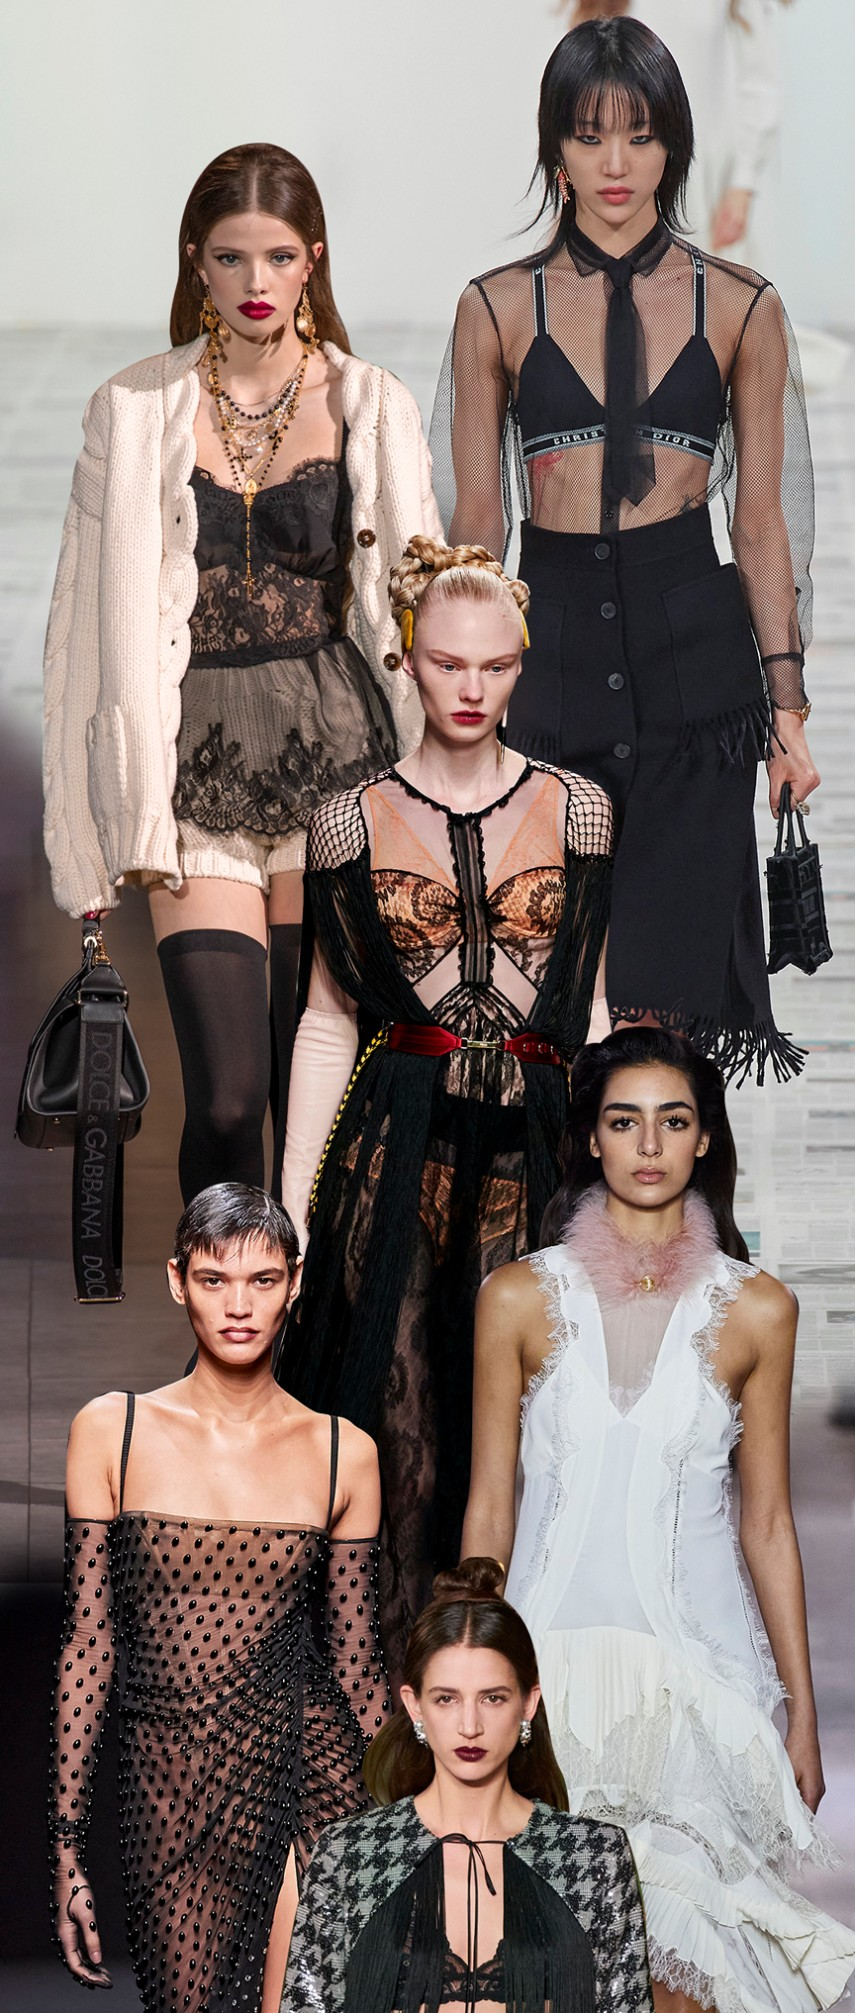 The Hottest And Most Coveted Fashion Trends From The Fall 2020 Runways (18) fashion trend The Hottest And Most Coveted Fashion Trends From The Fall 2020 Runways The Hottest And Most Coveted Fashion Trends From The Fall 2020 Runways 18